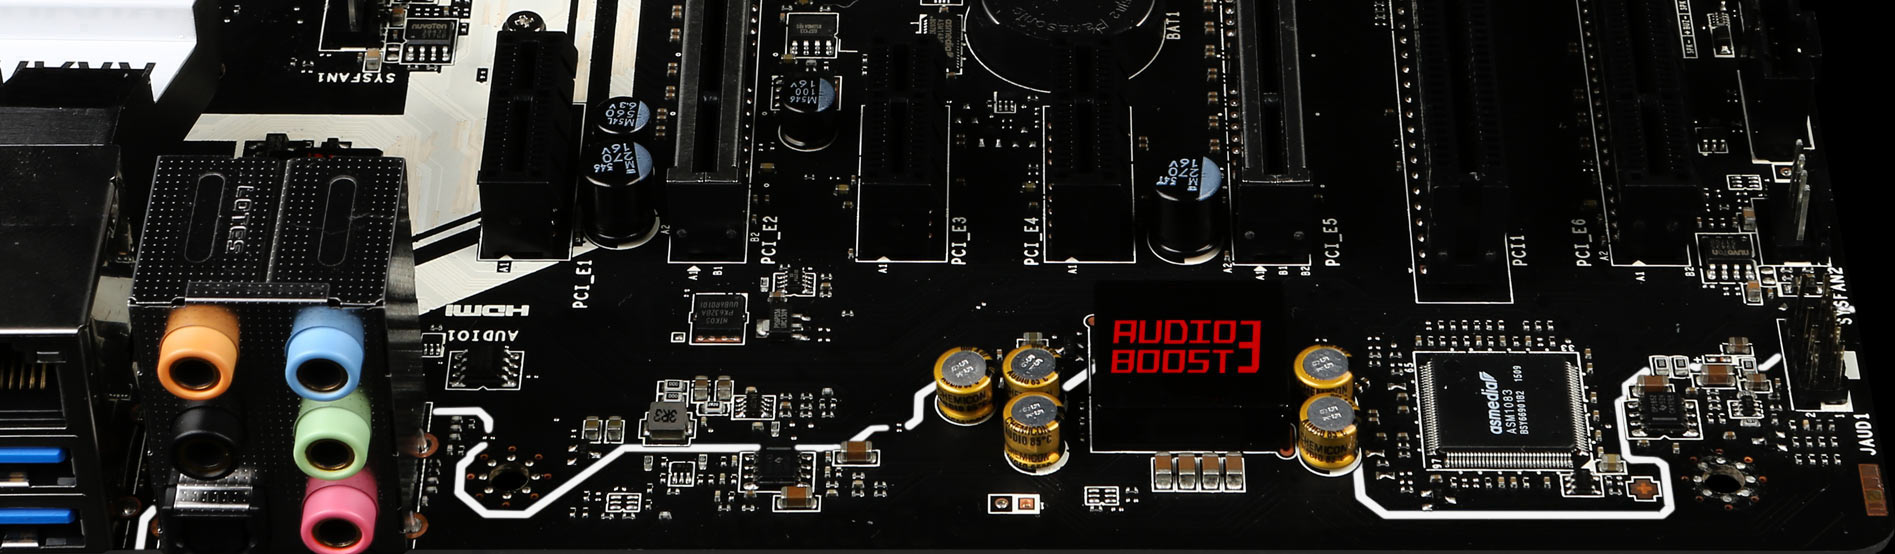 Z170A KRAIT GAMING R6 SIEGE | Motherboard - The world leader in